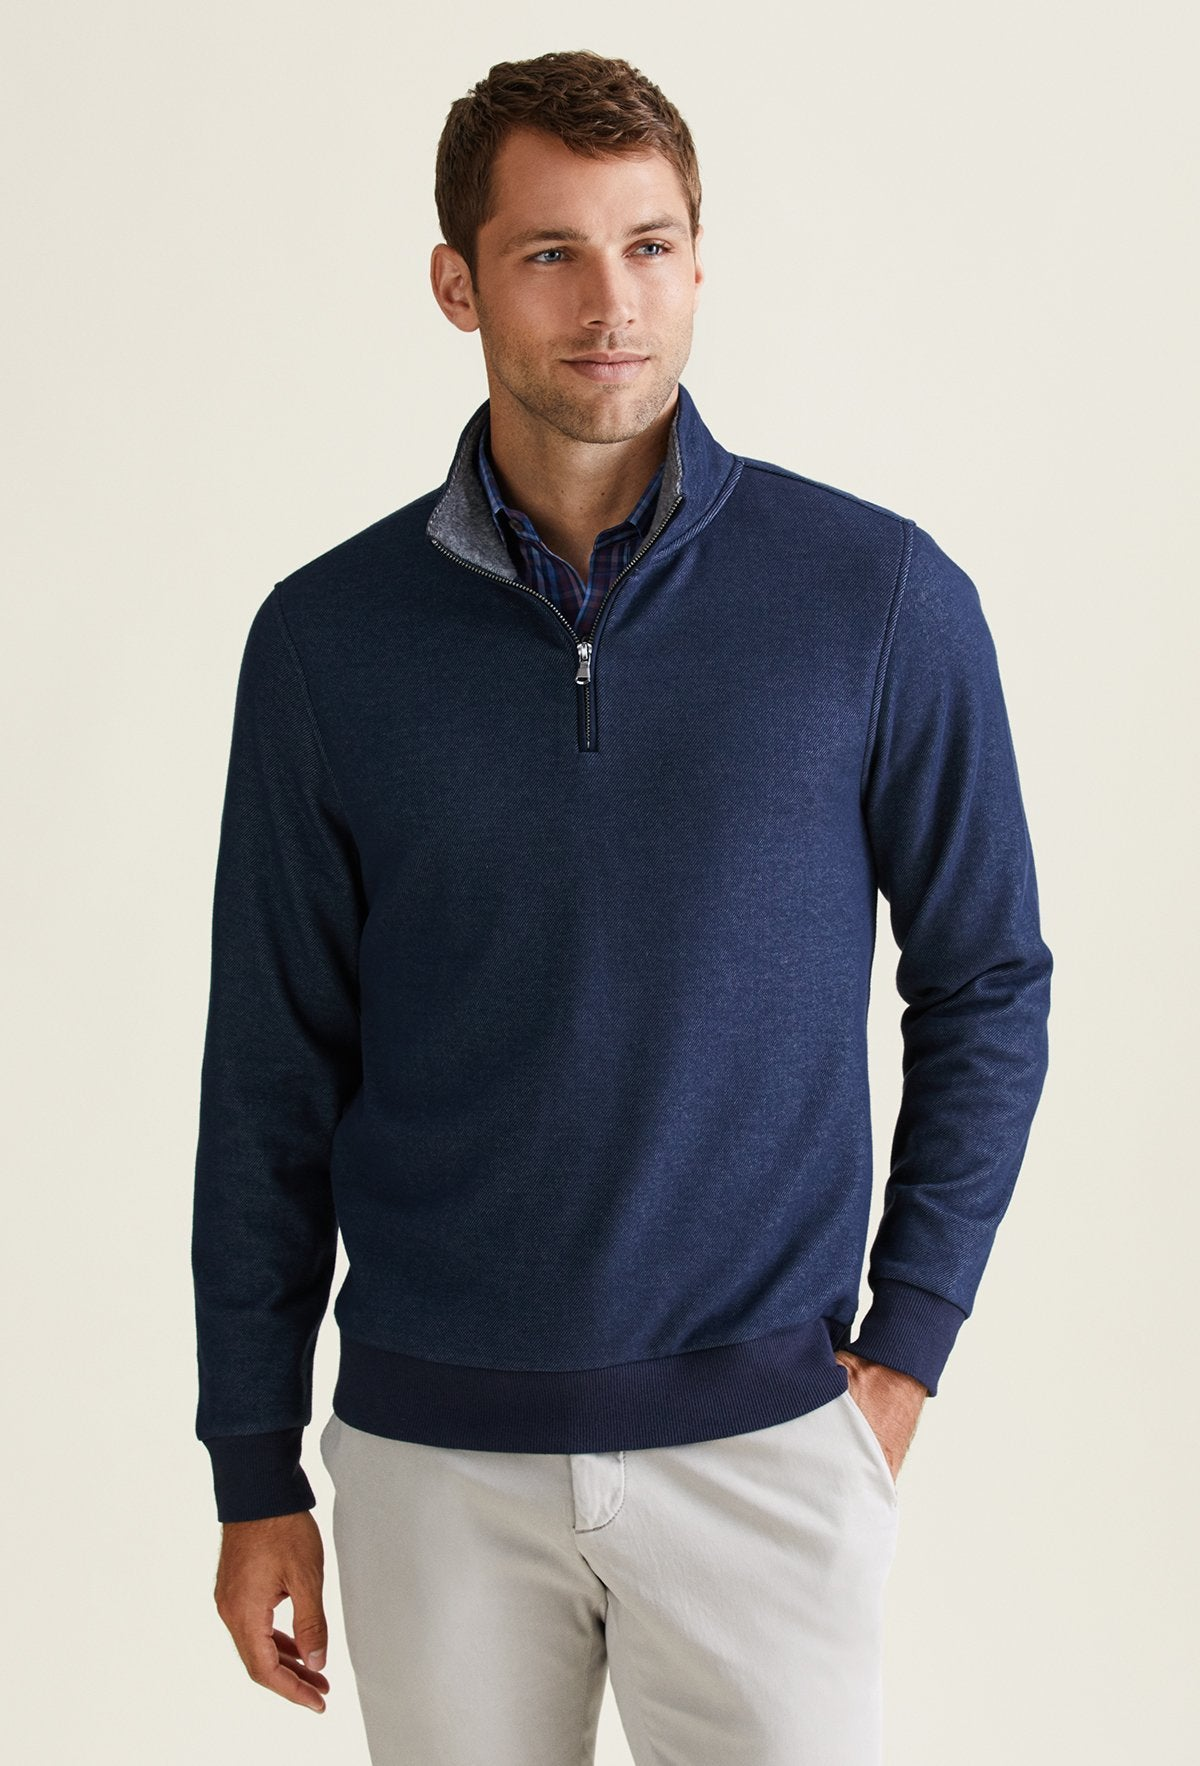 navy blue quarter zip sweater for men made from polyester, cotton and elastane